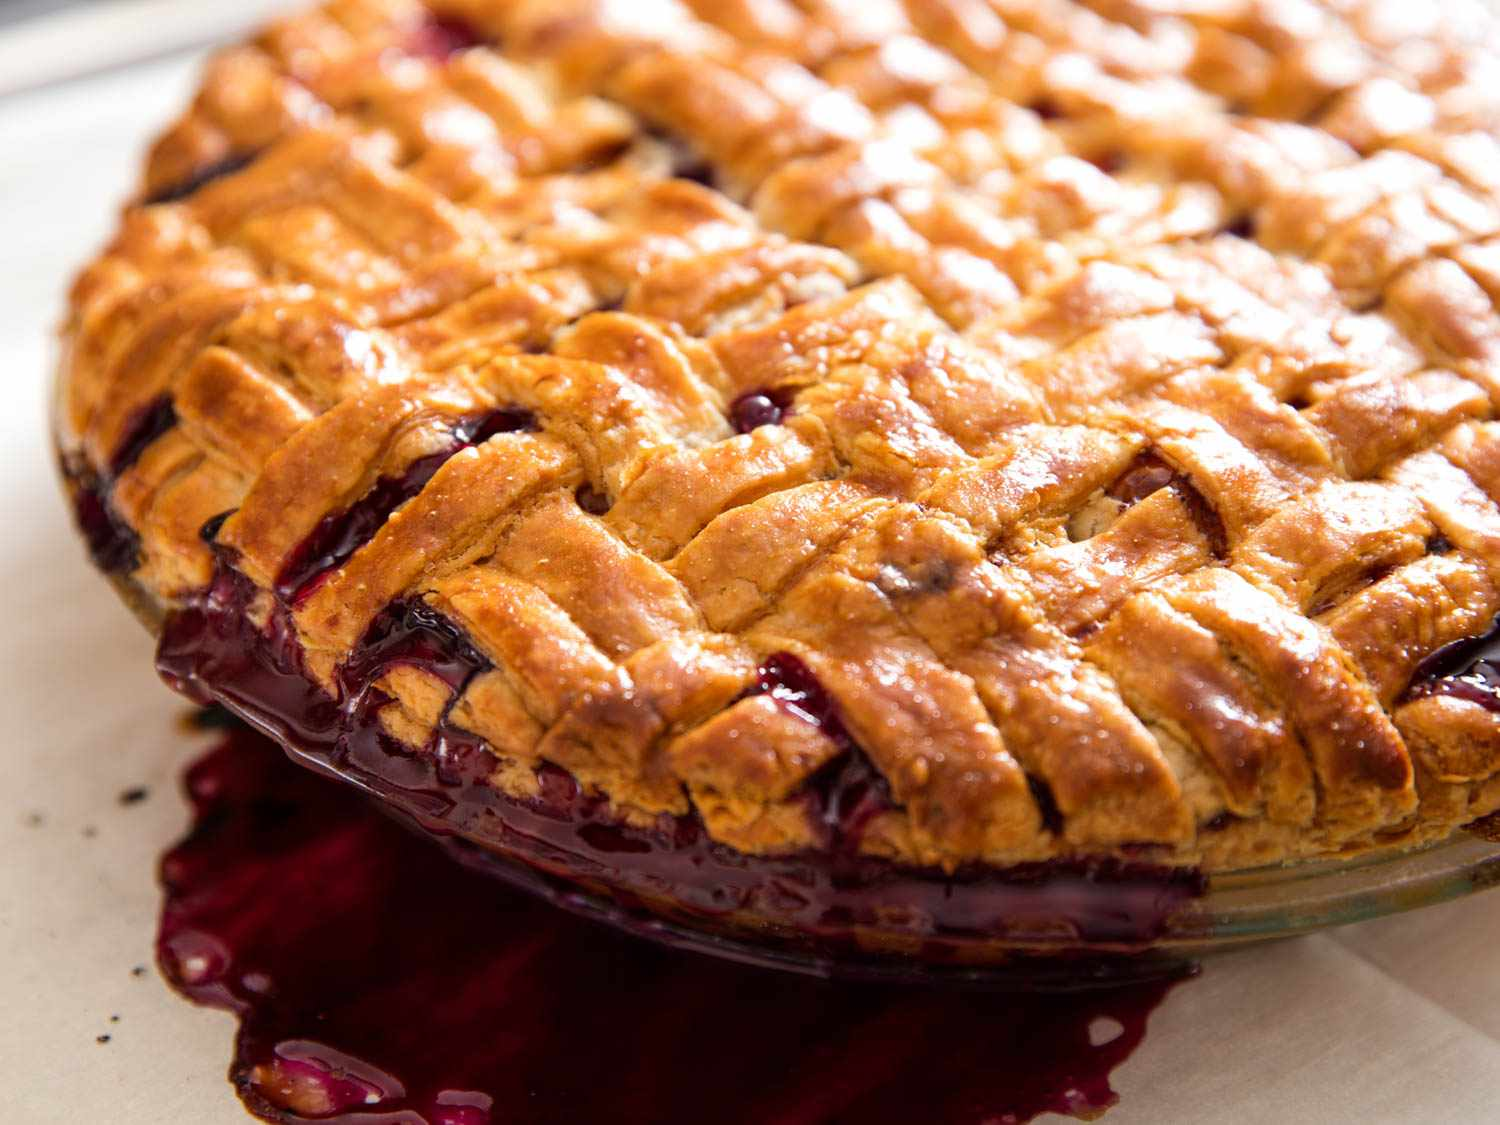 A lattice-topped mixed-fruit pie in a glass pie dish, with filling bubbling over onto parchment paper